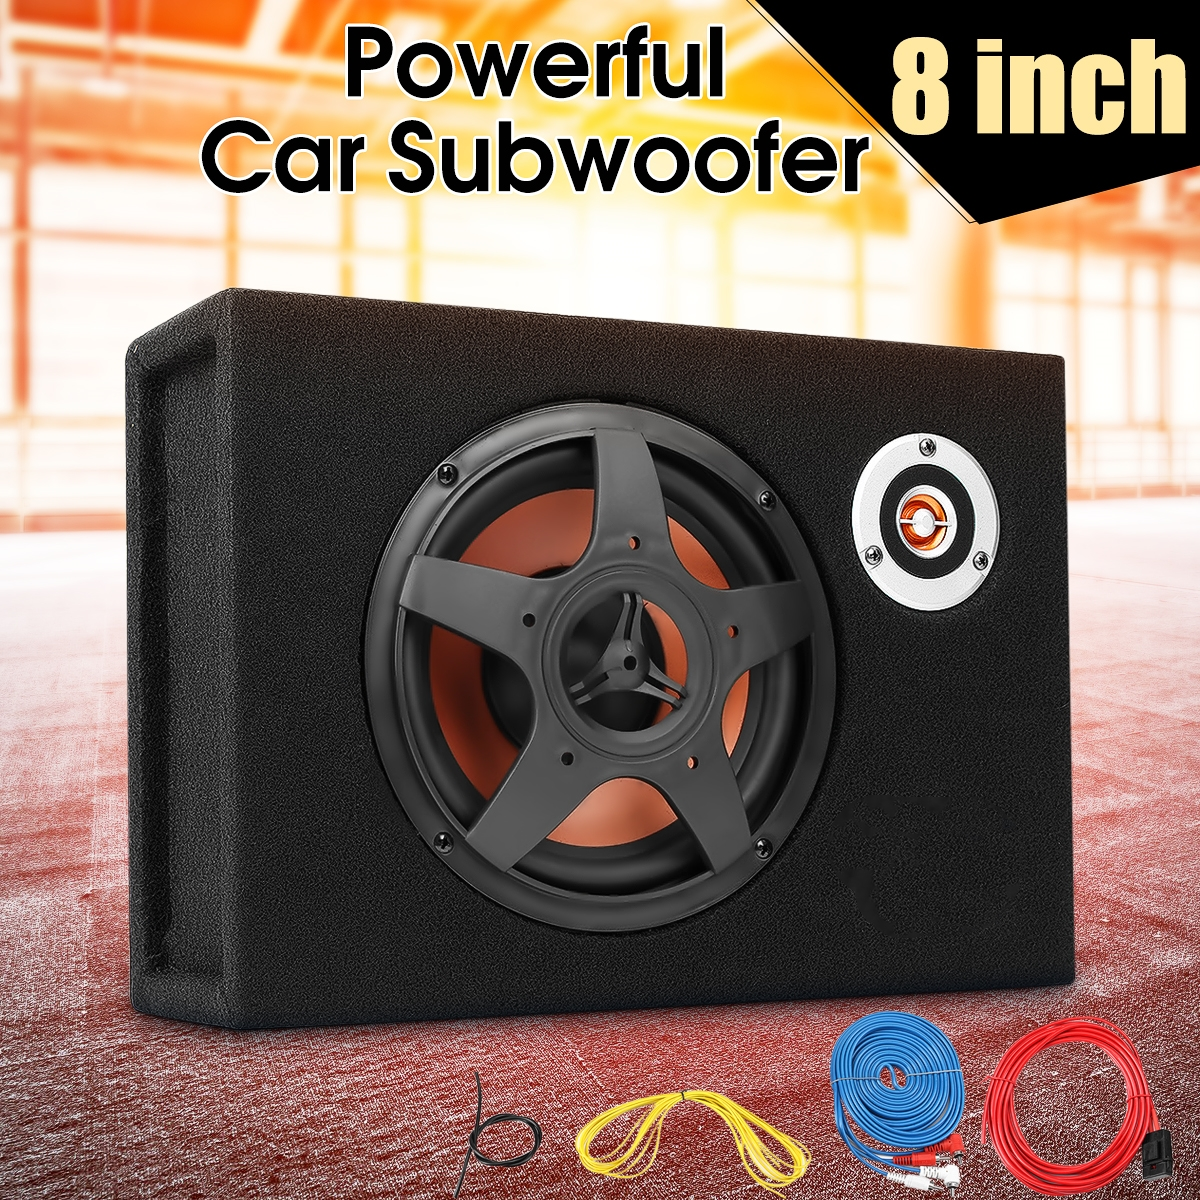 8 inch bluetooth car home subwoofer under seat sub 600w stereo subwoofer car audio speaker music system sound woofer KROAK 8 Inch 480W Car Ultra Thin Subwoofer Speaker Vehicle Under-Seat Car Subwoofer Modified Speaker Stereo Audio Bass Amplifier